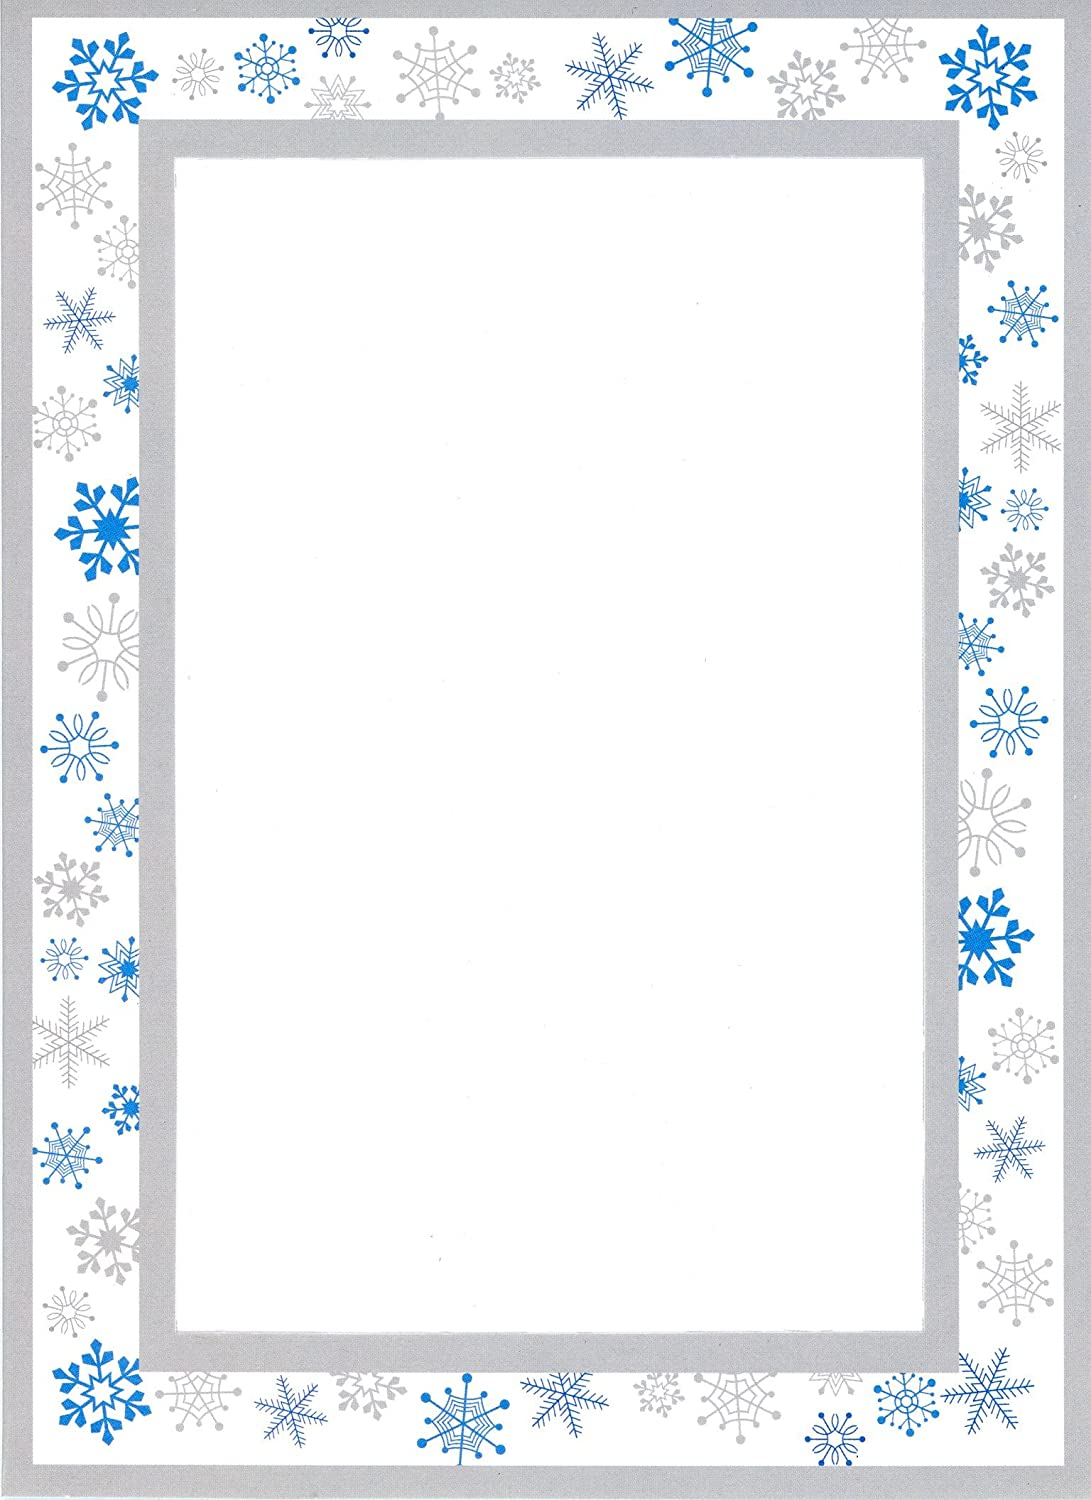 """4 x 6写真挿入ノートカード – 24パックby Plymouthカード 5"""" x 7"""" for a 4"""" x 6"""" print or photo ブルー PARENT-COLLECTIONS B076B1L3MP Snowflakes Snowflakes"""